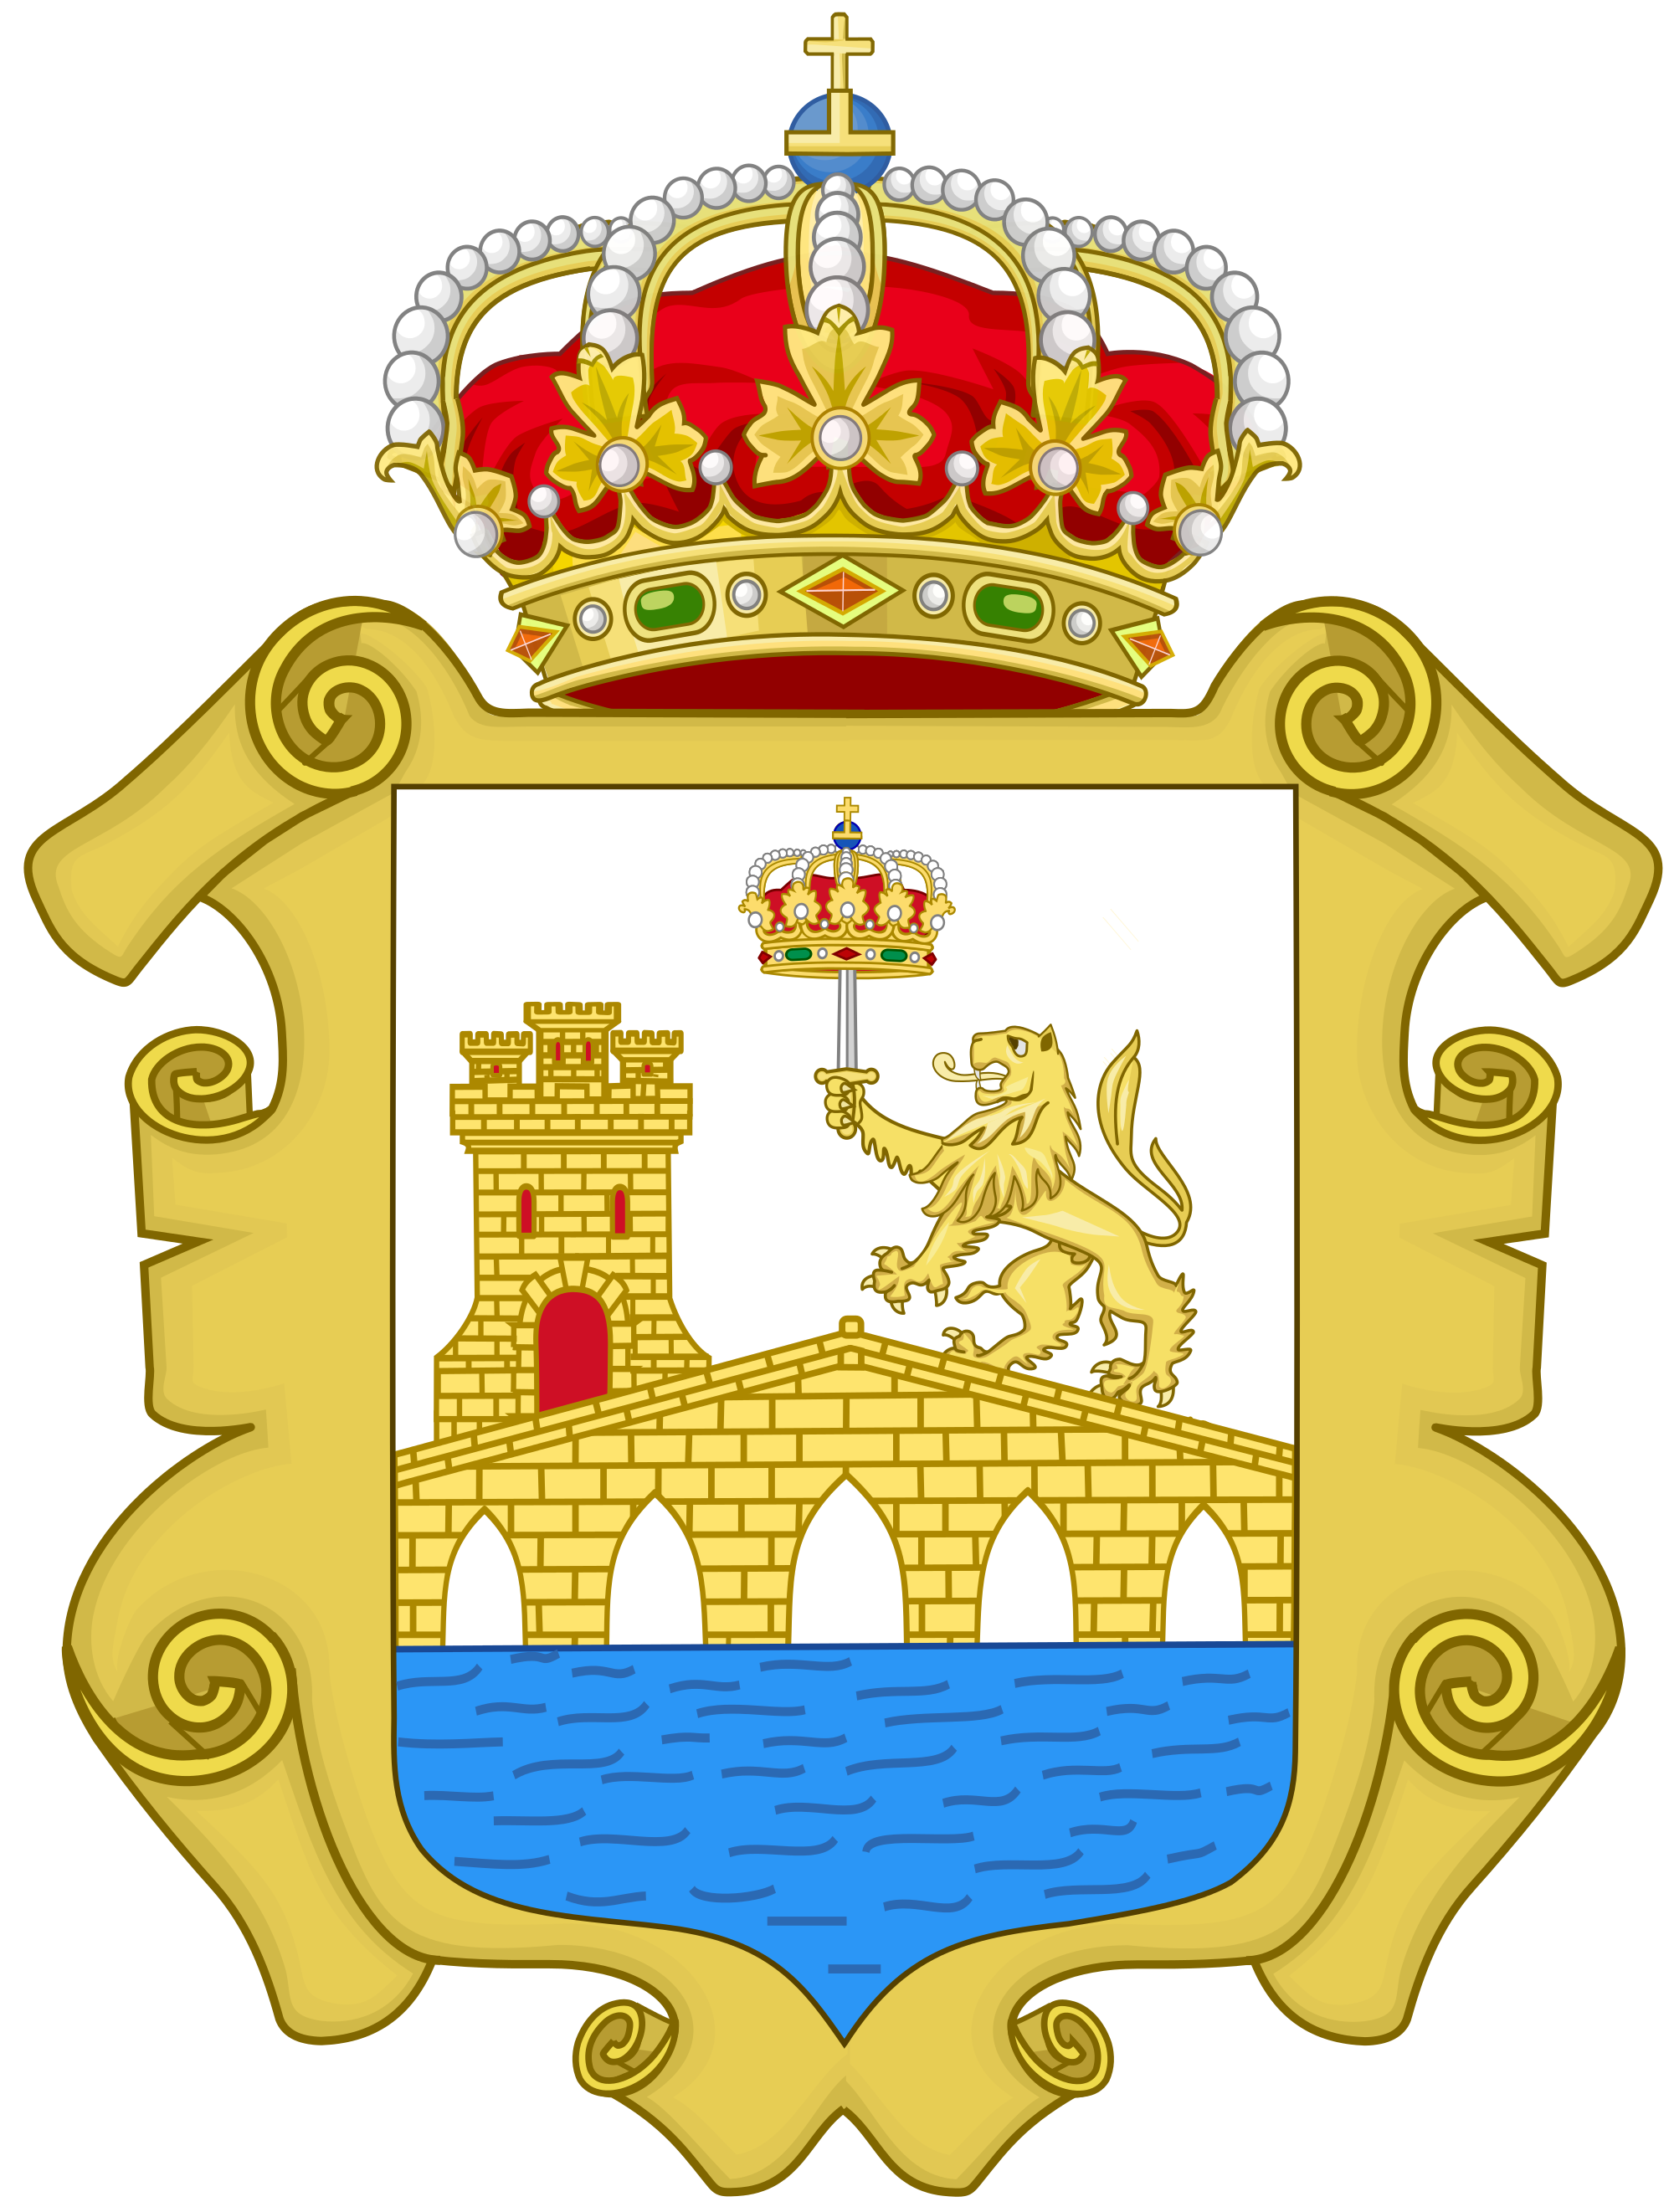 File:Coat of Arms of Ourense.svg.